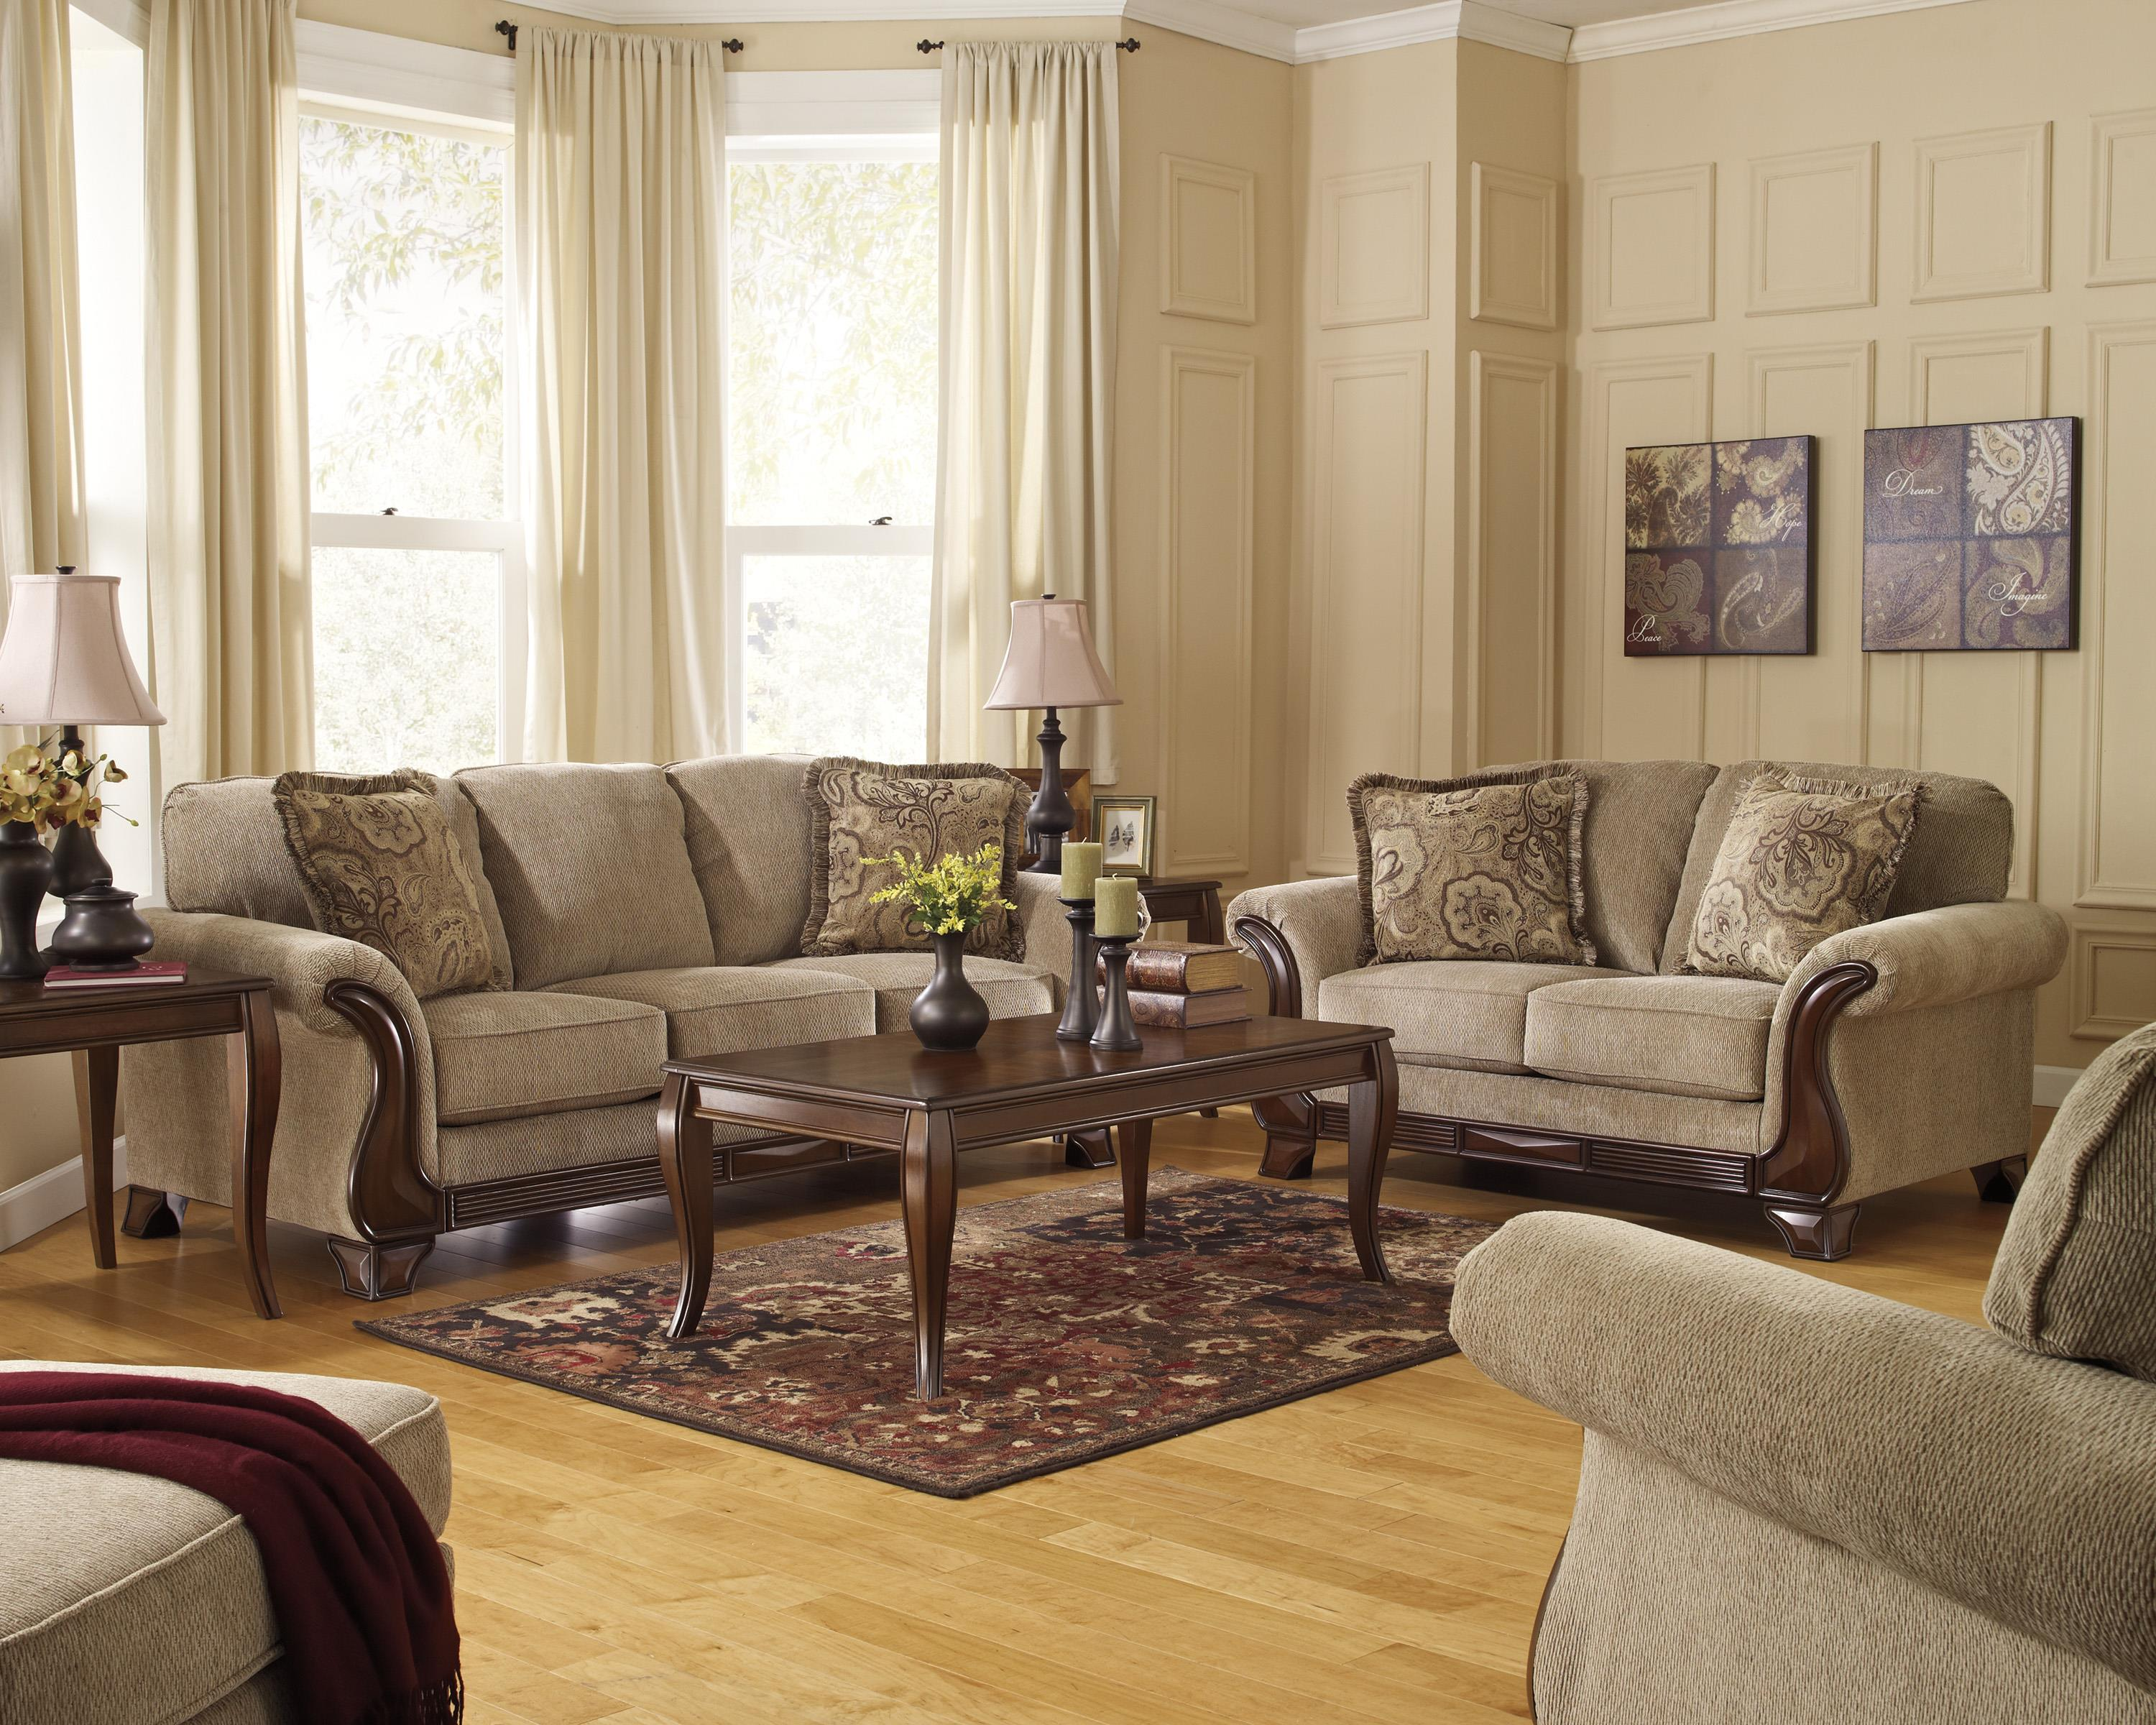 Lanett Stationary Living Room Group by Signature Design by Ashley at Northeast Factory Direct